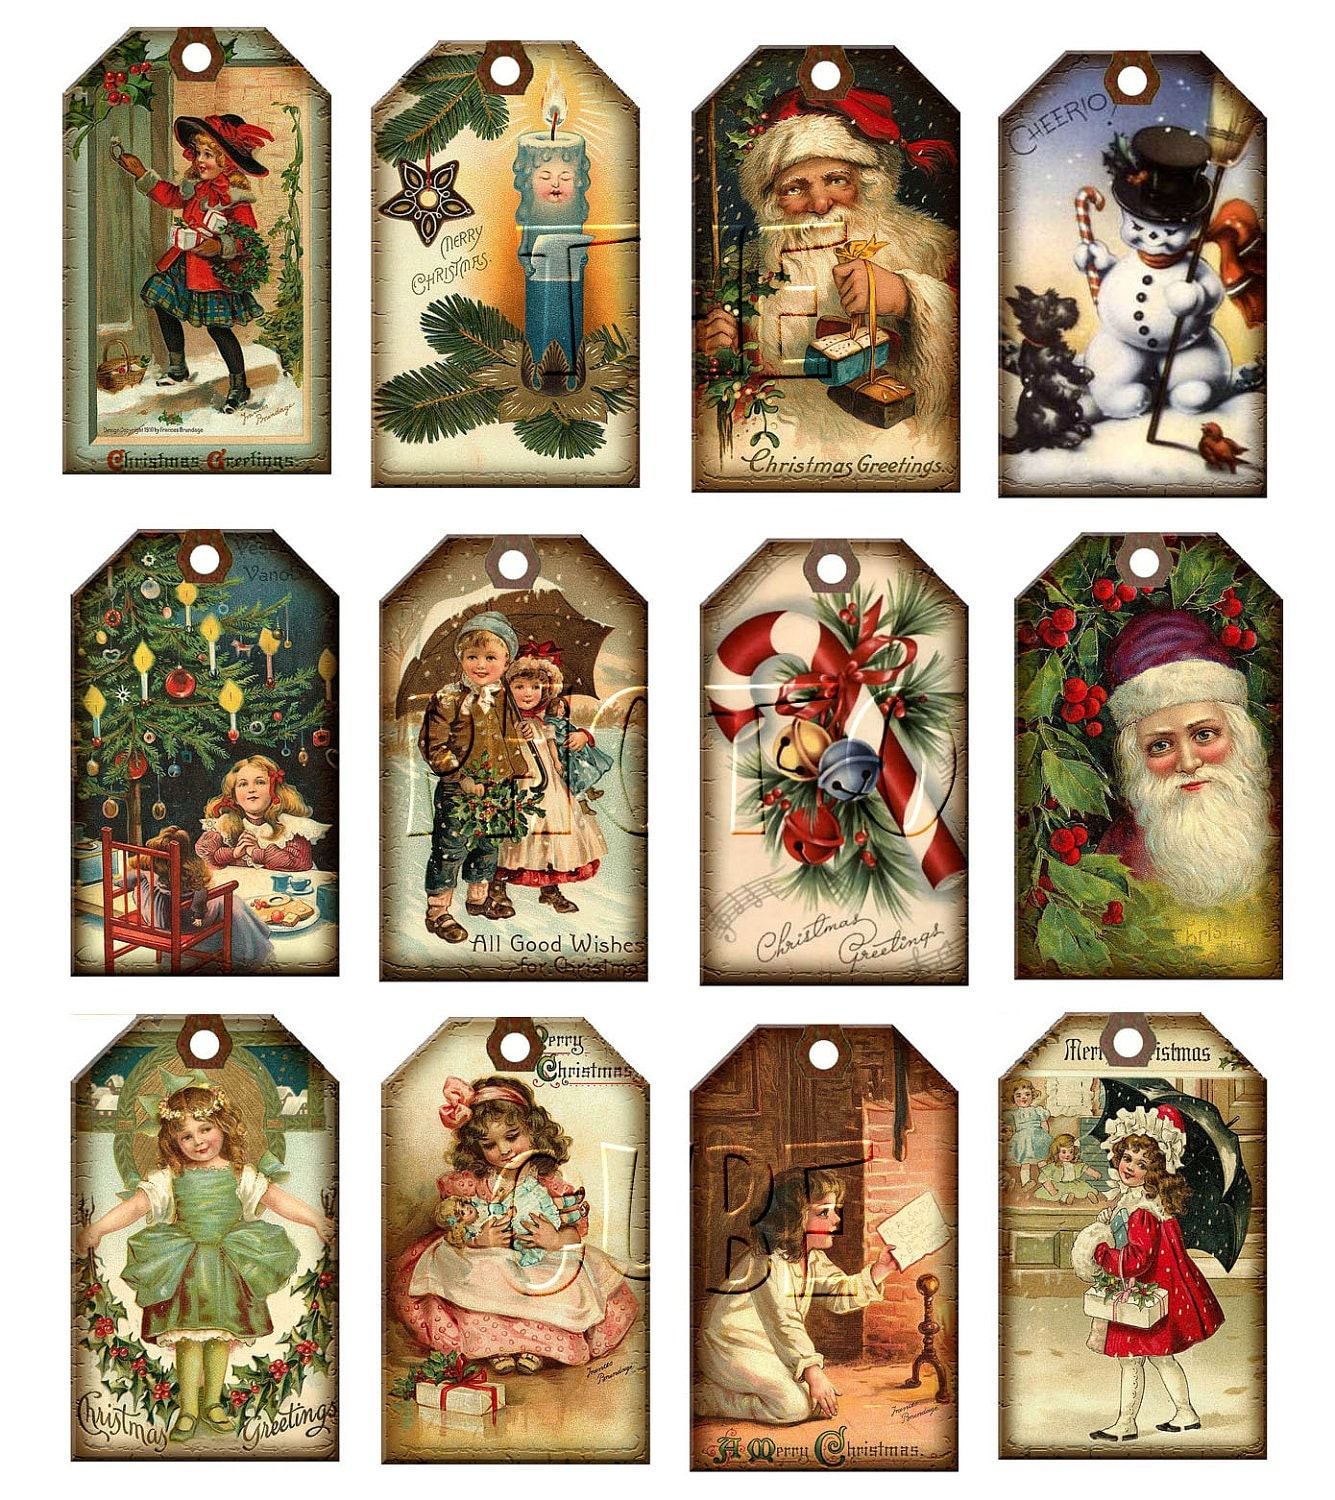 Christmas Vintage ArT Hang/Gift Tags Santa Claus by thephotocube